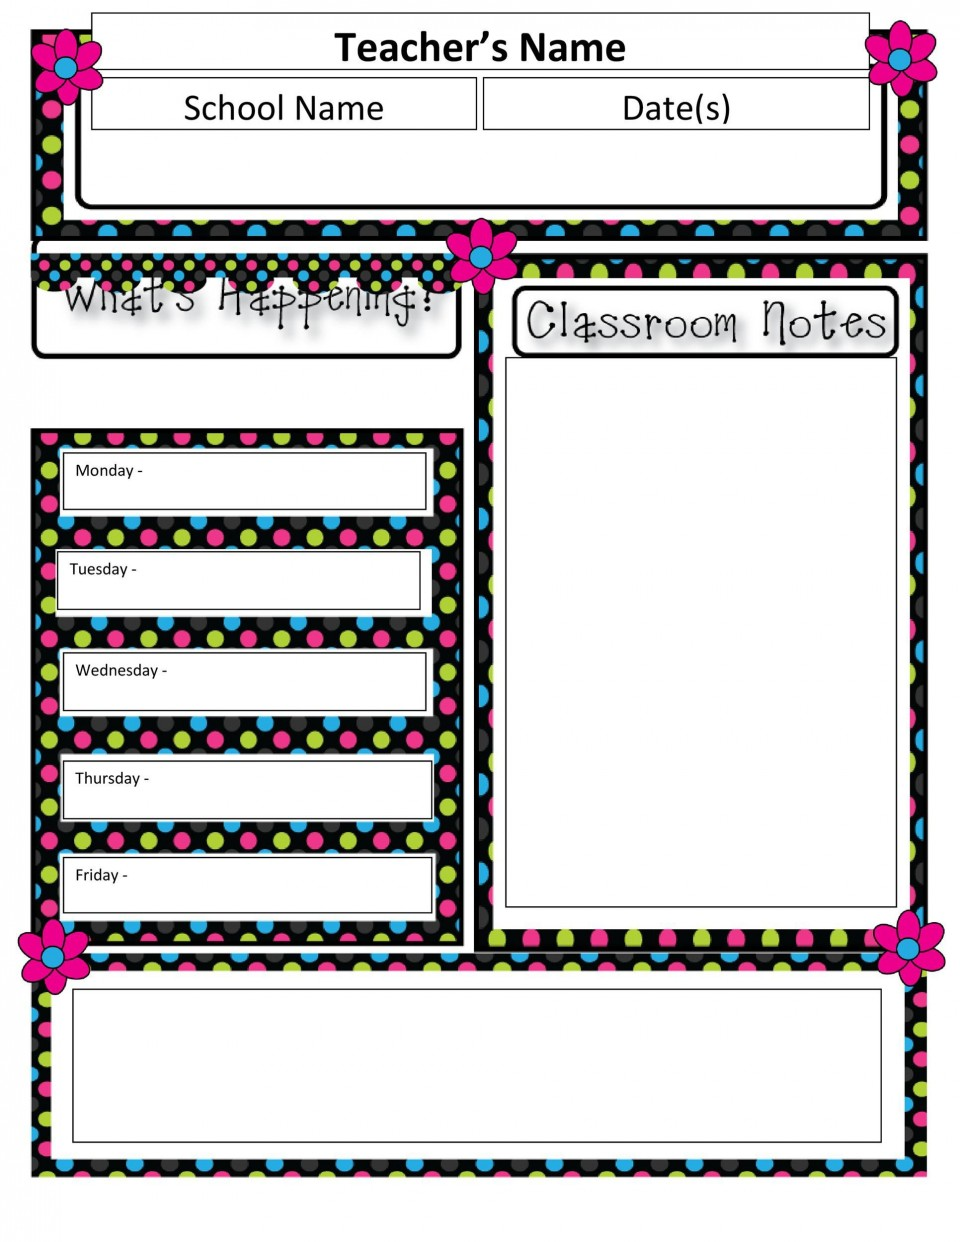 008 Unique Free Teacher Newsletter Template Image  Classroom For Microsoft Word Google Doc960